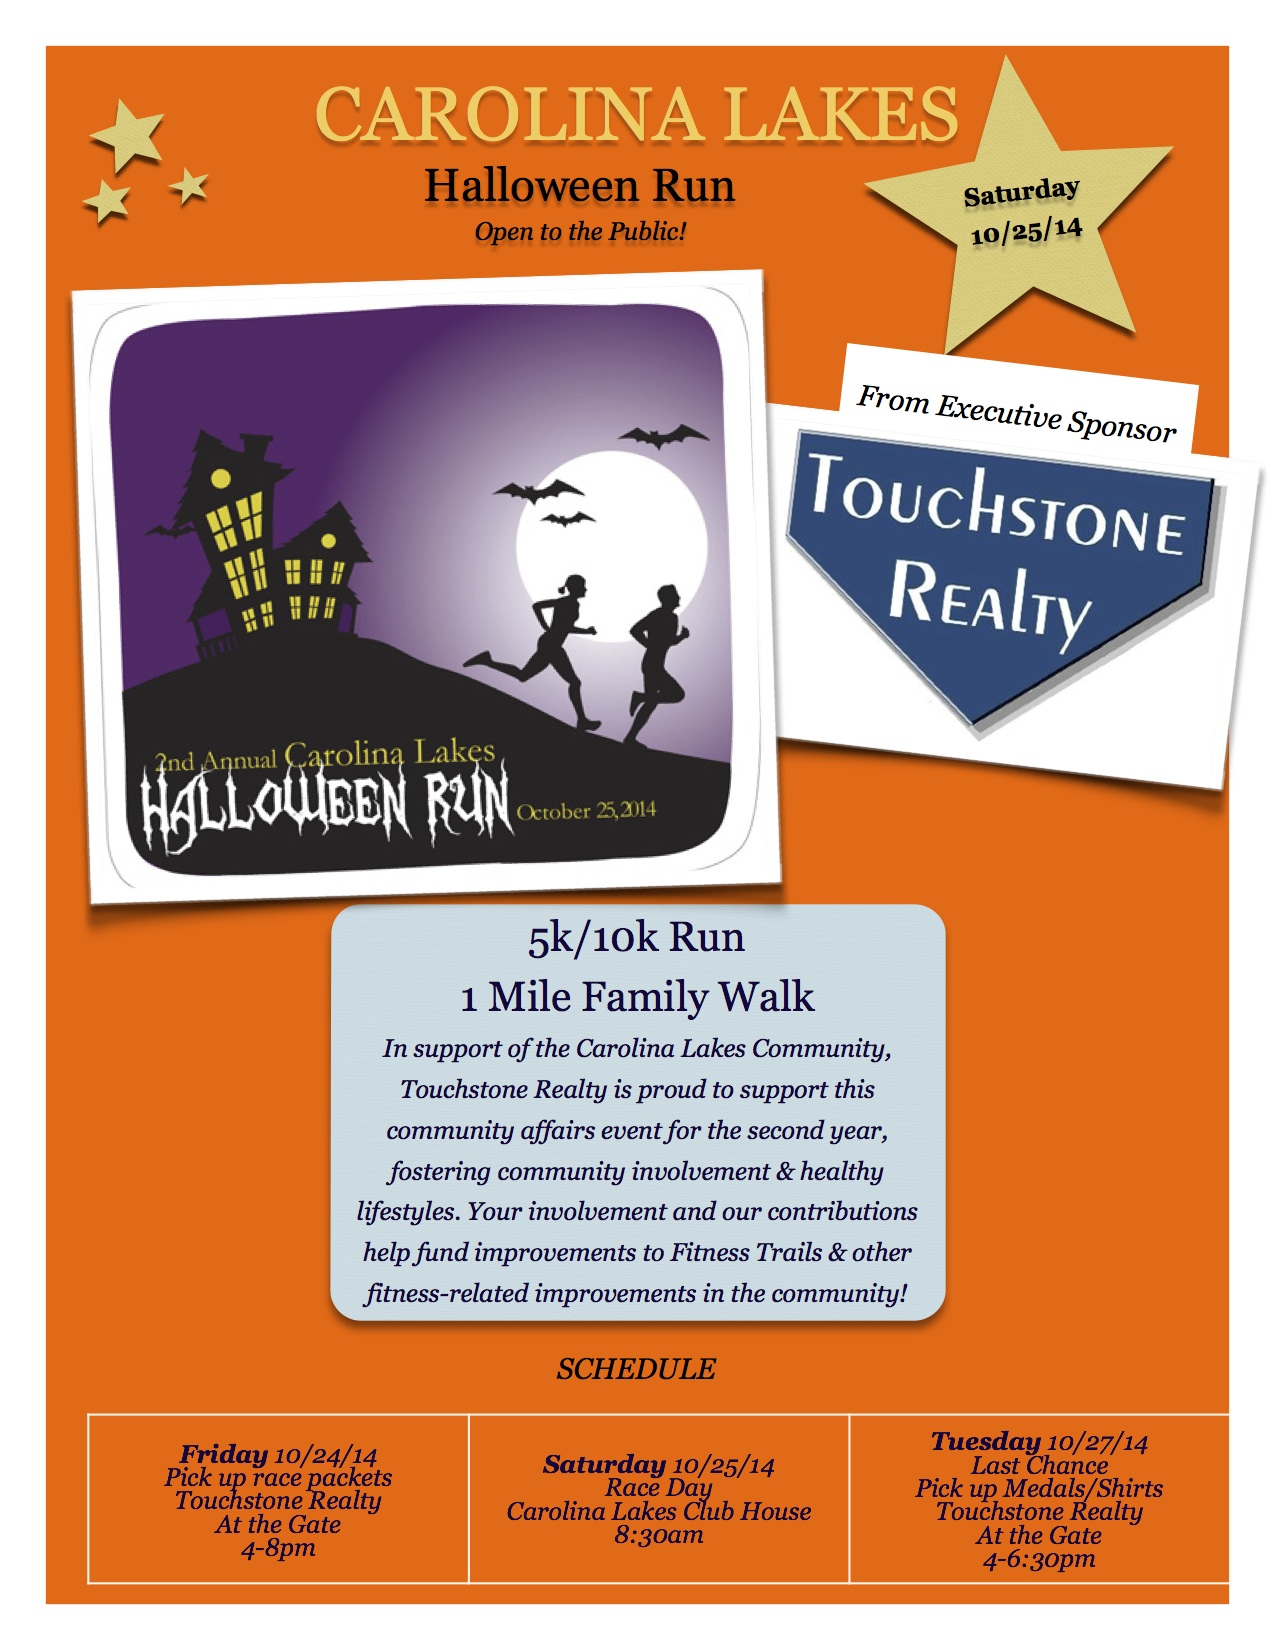 CL_Halloween_Run_Web_site